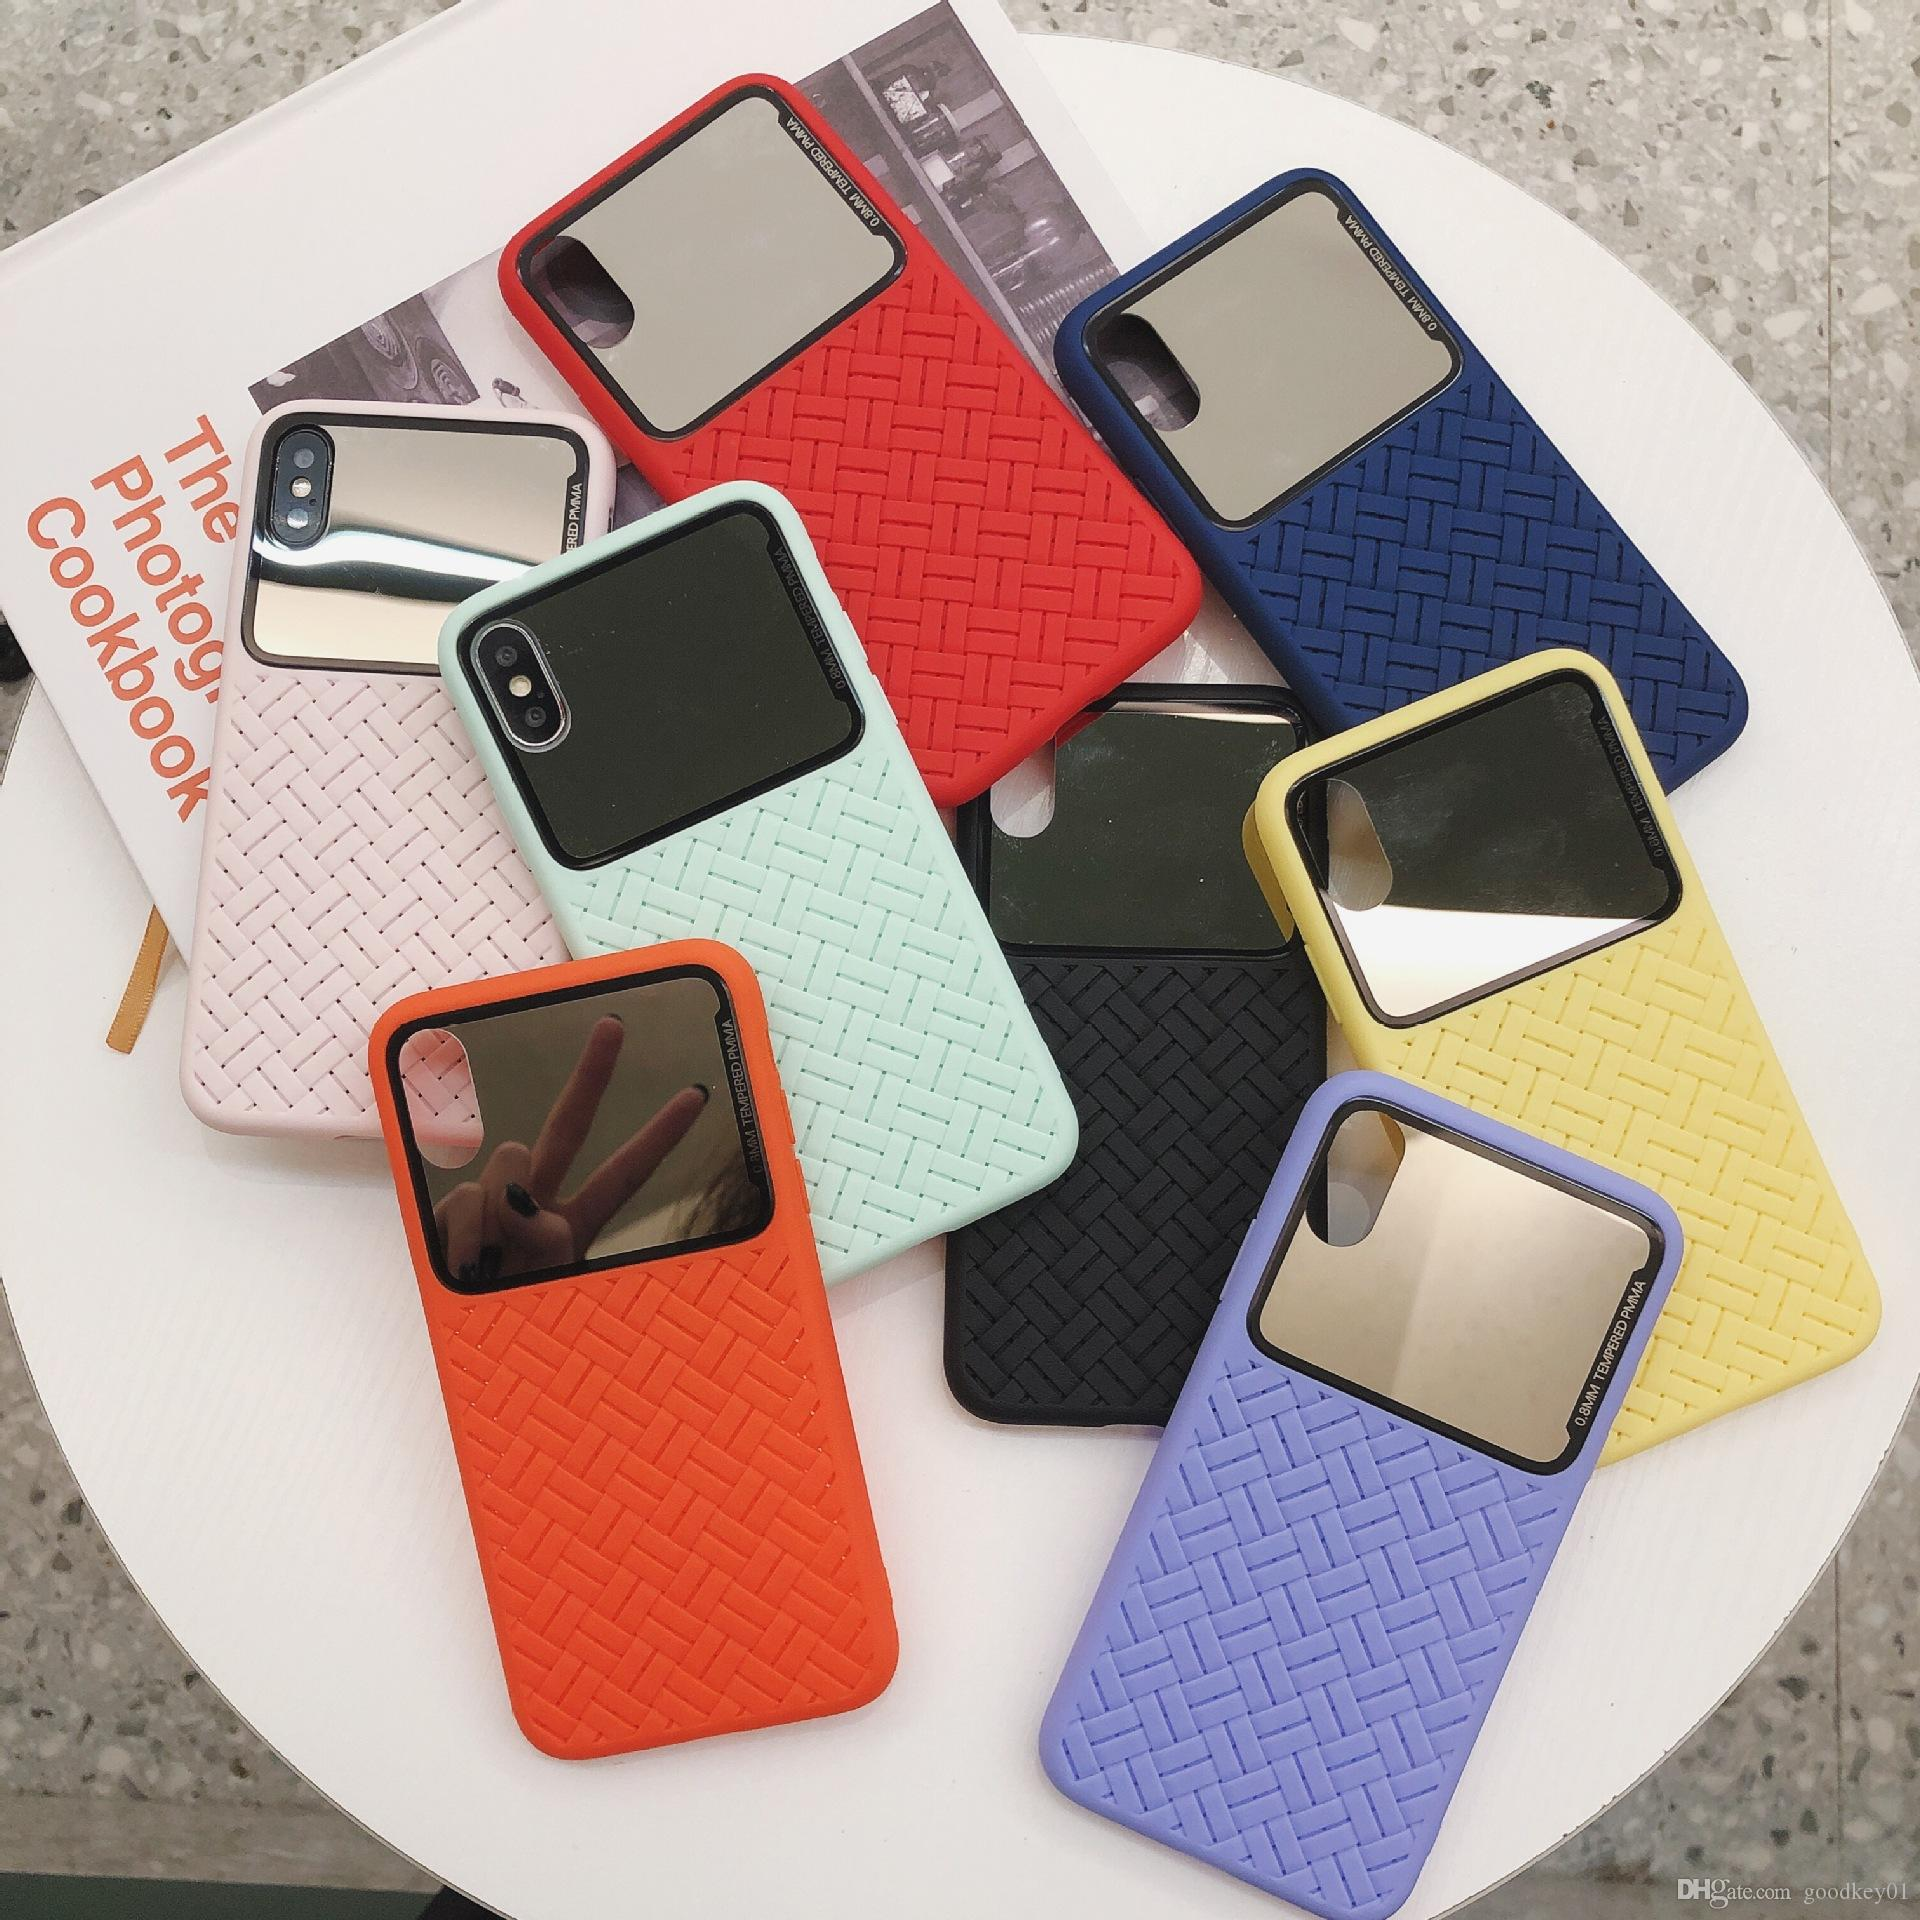 For iPhone X Xr Xsmax Xs 7 Puls 6 6S 7 8Puls Phone Case Cute Retro Pattern Cases Mirror Soft Silicone Cover